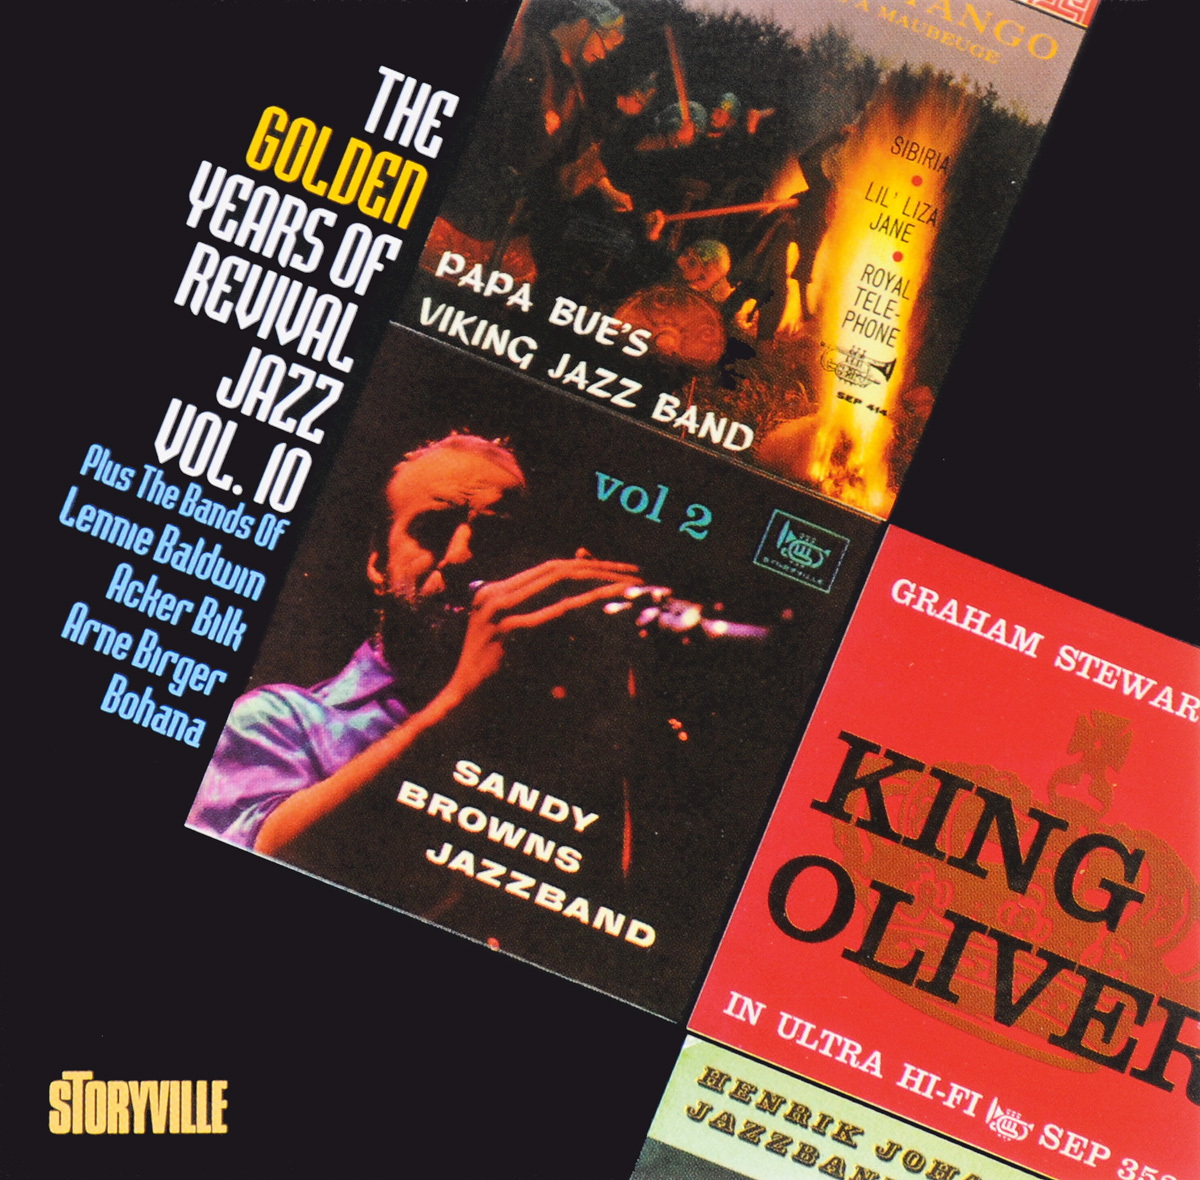 The Golden Years Of Revival Jazz. Vol. 10